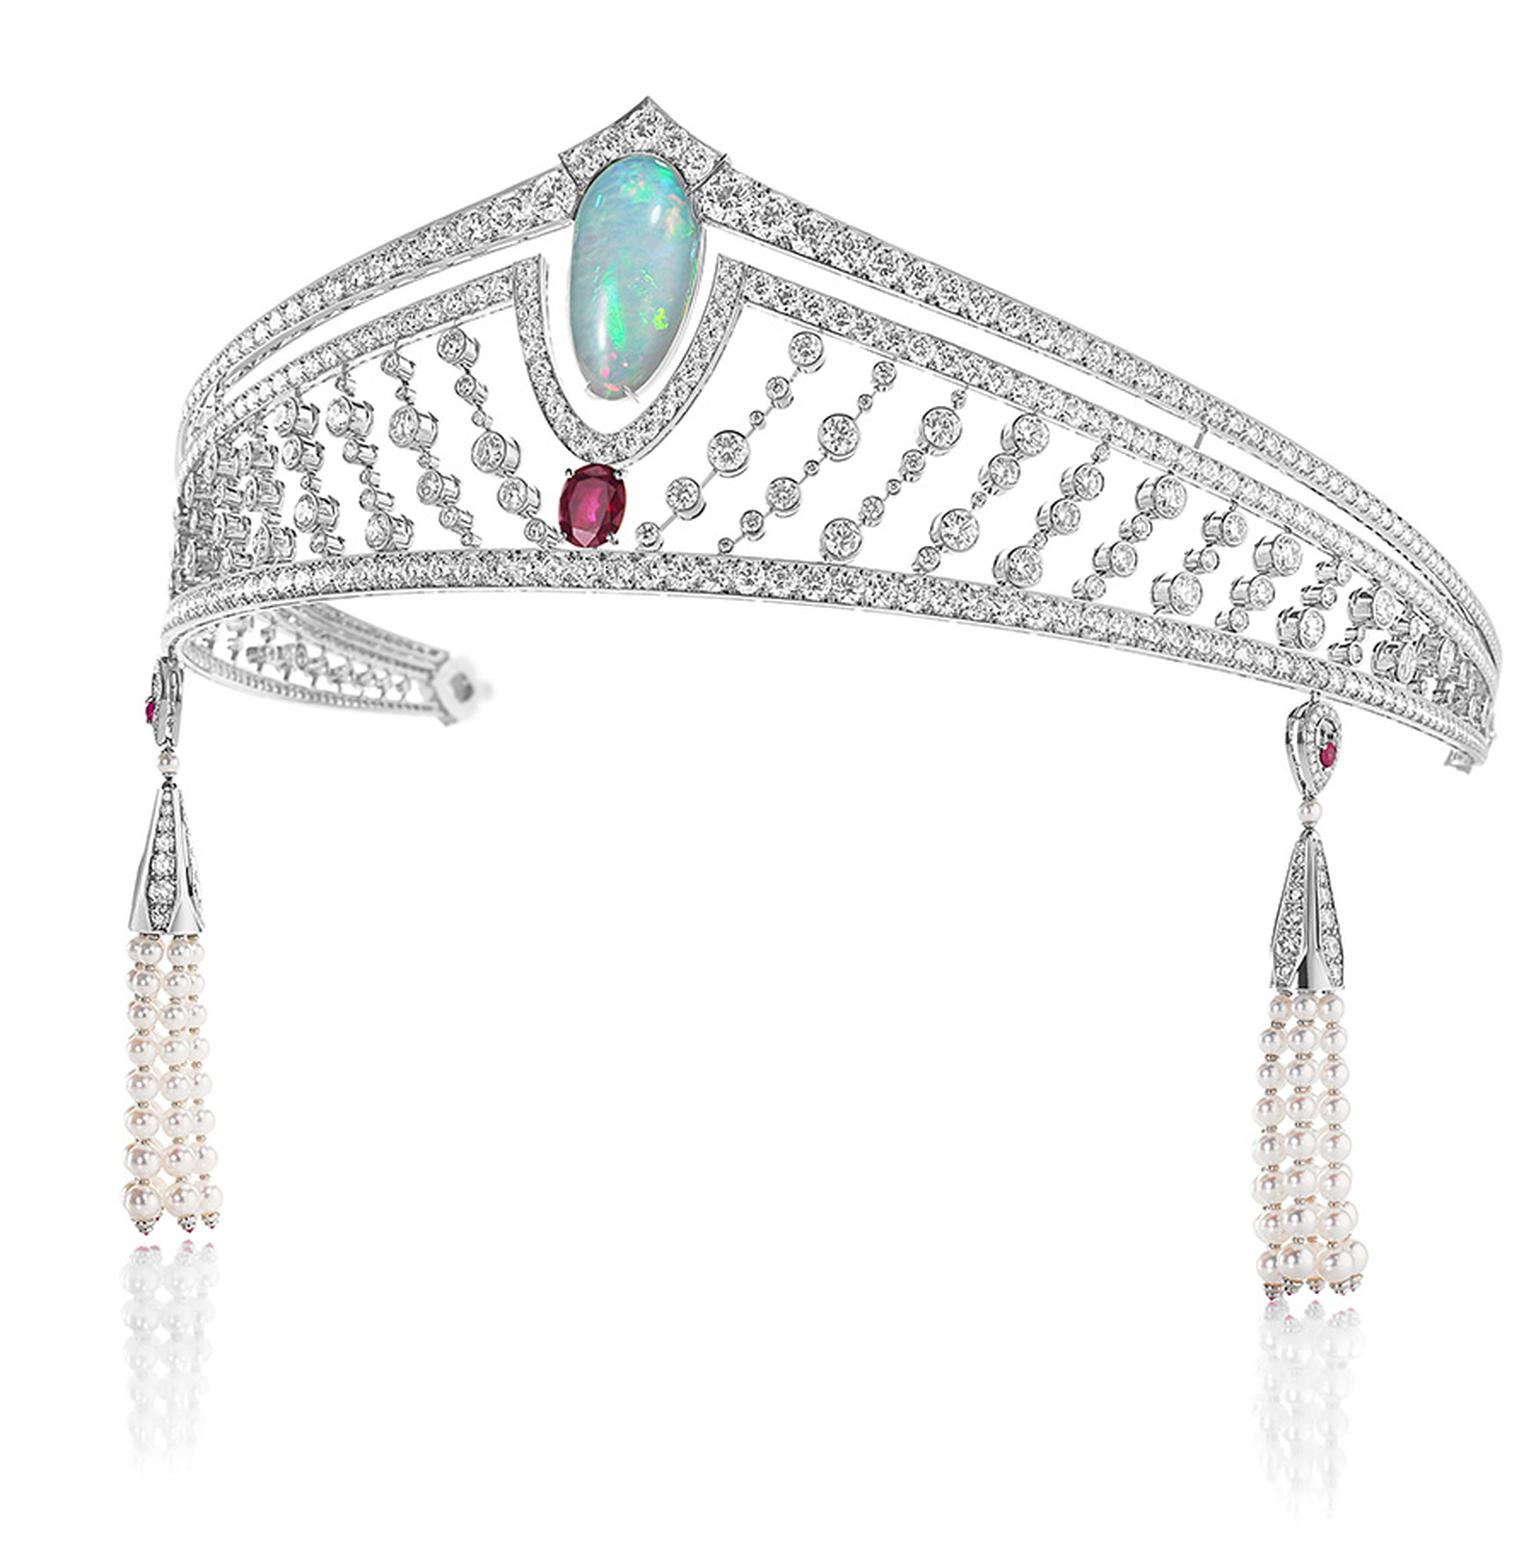 Chaumet-diademe2_6_photo.jpg